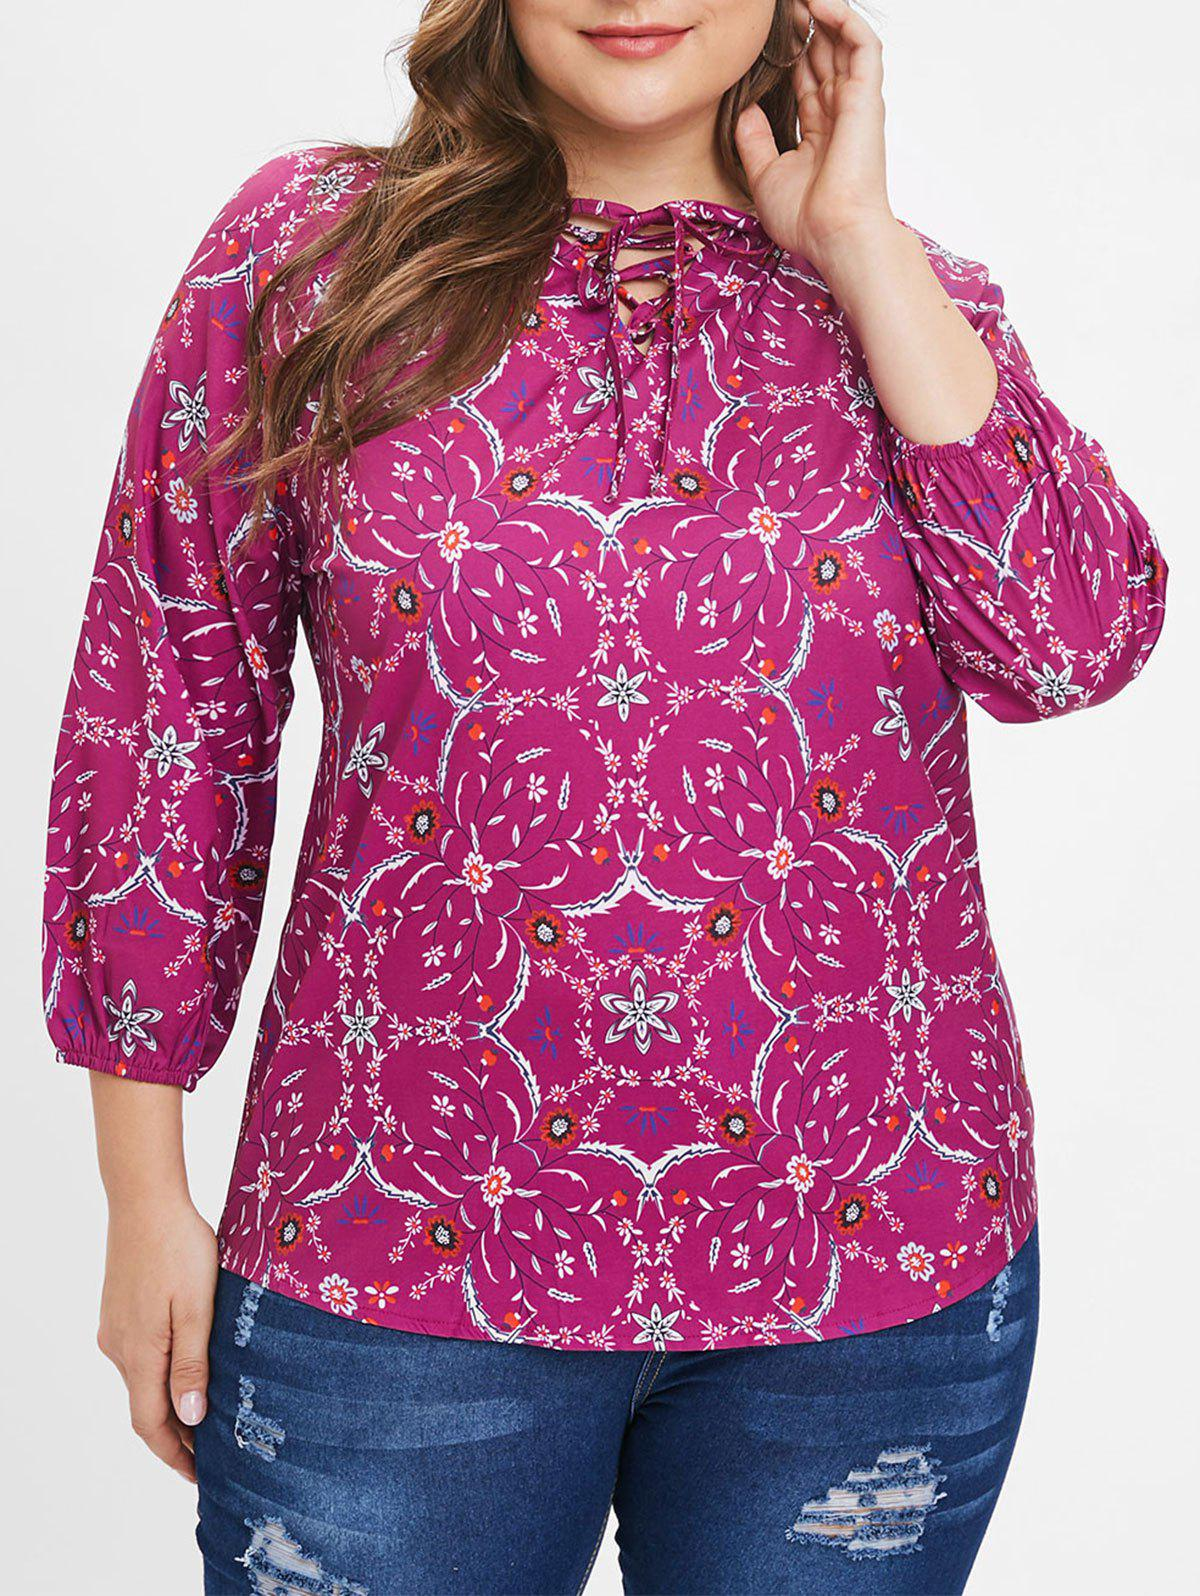 Chic Plus Size Raglan Sleeves Floral Blouse with Lace Up